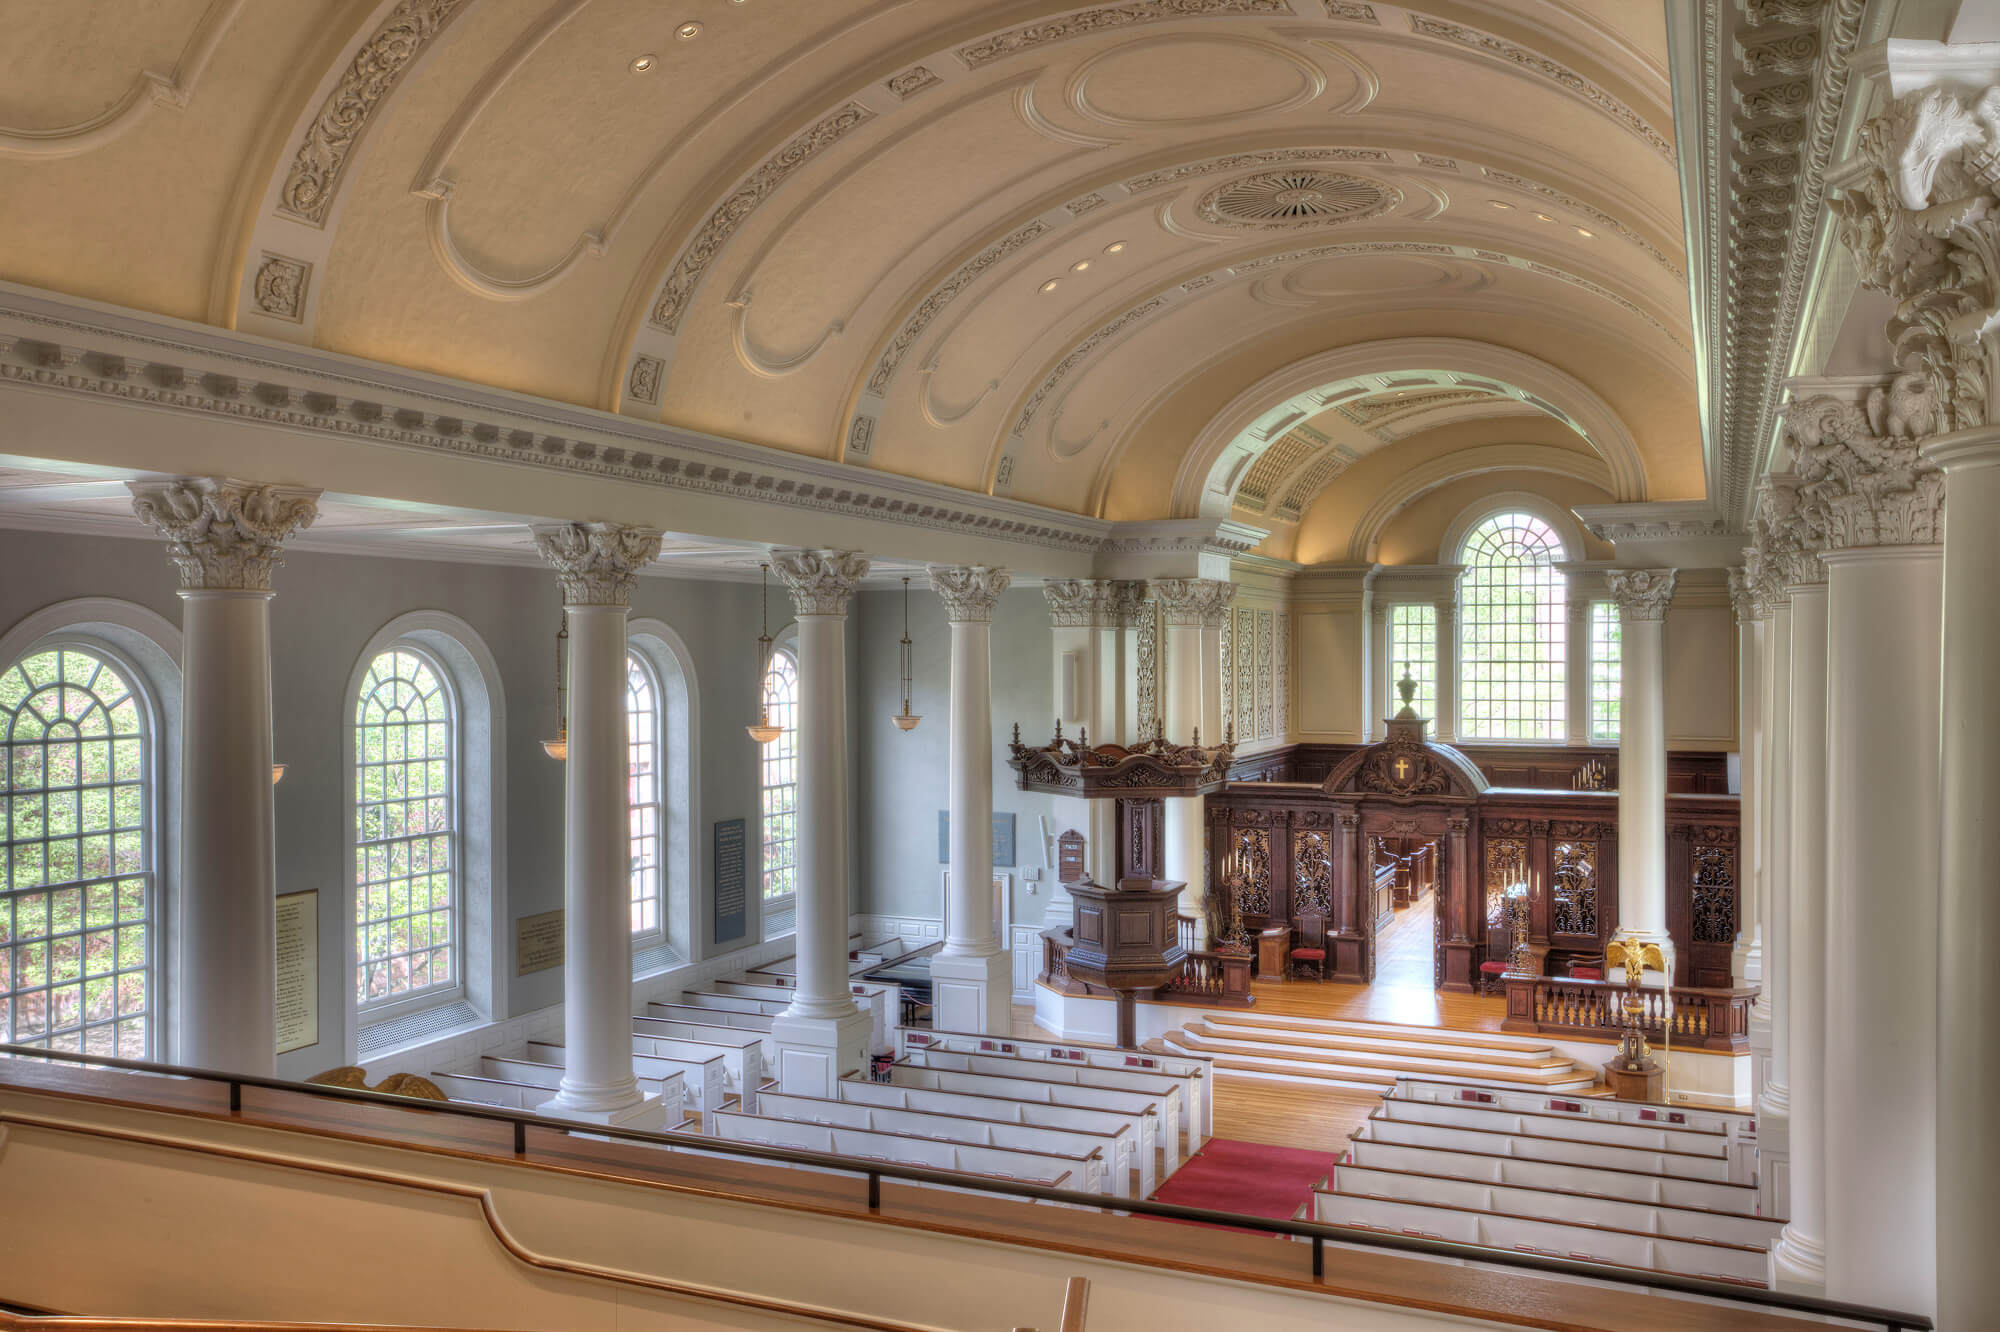 View from balcony onto the arched windows, columns, pews, and detailed vaulted ceiling.